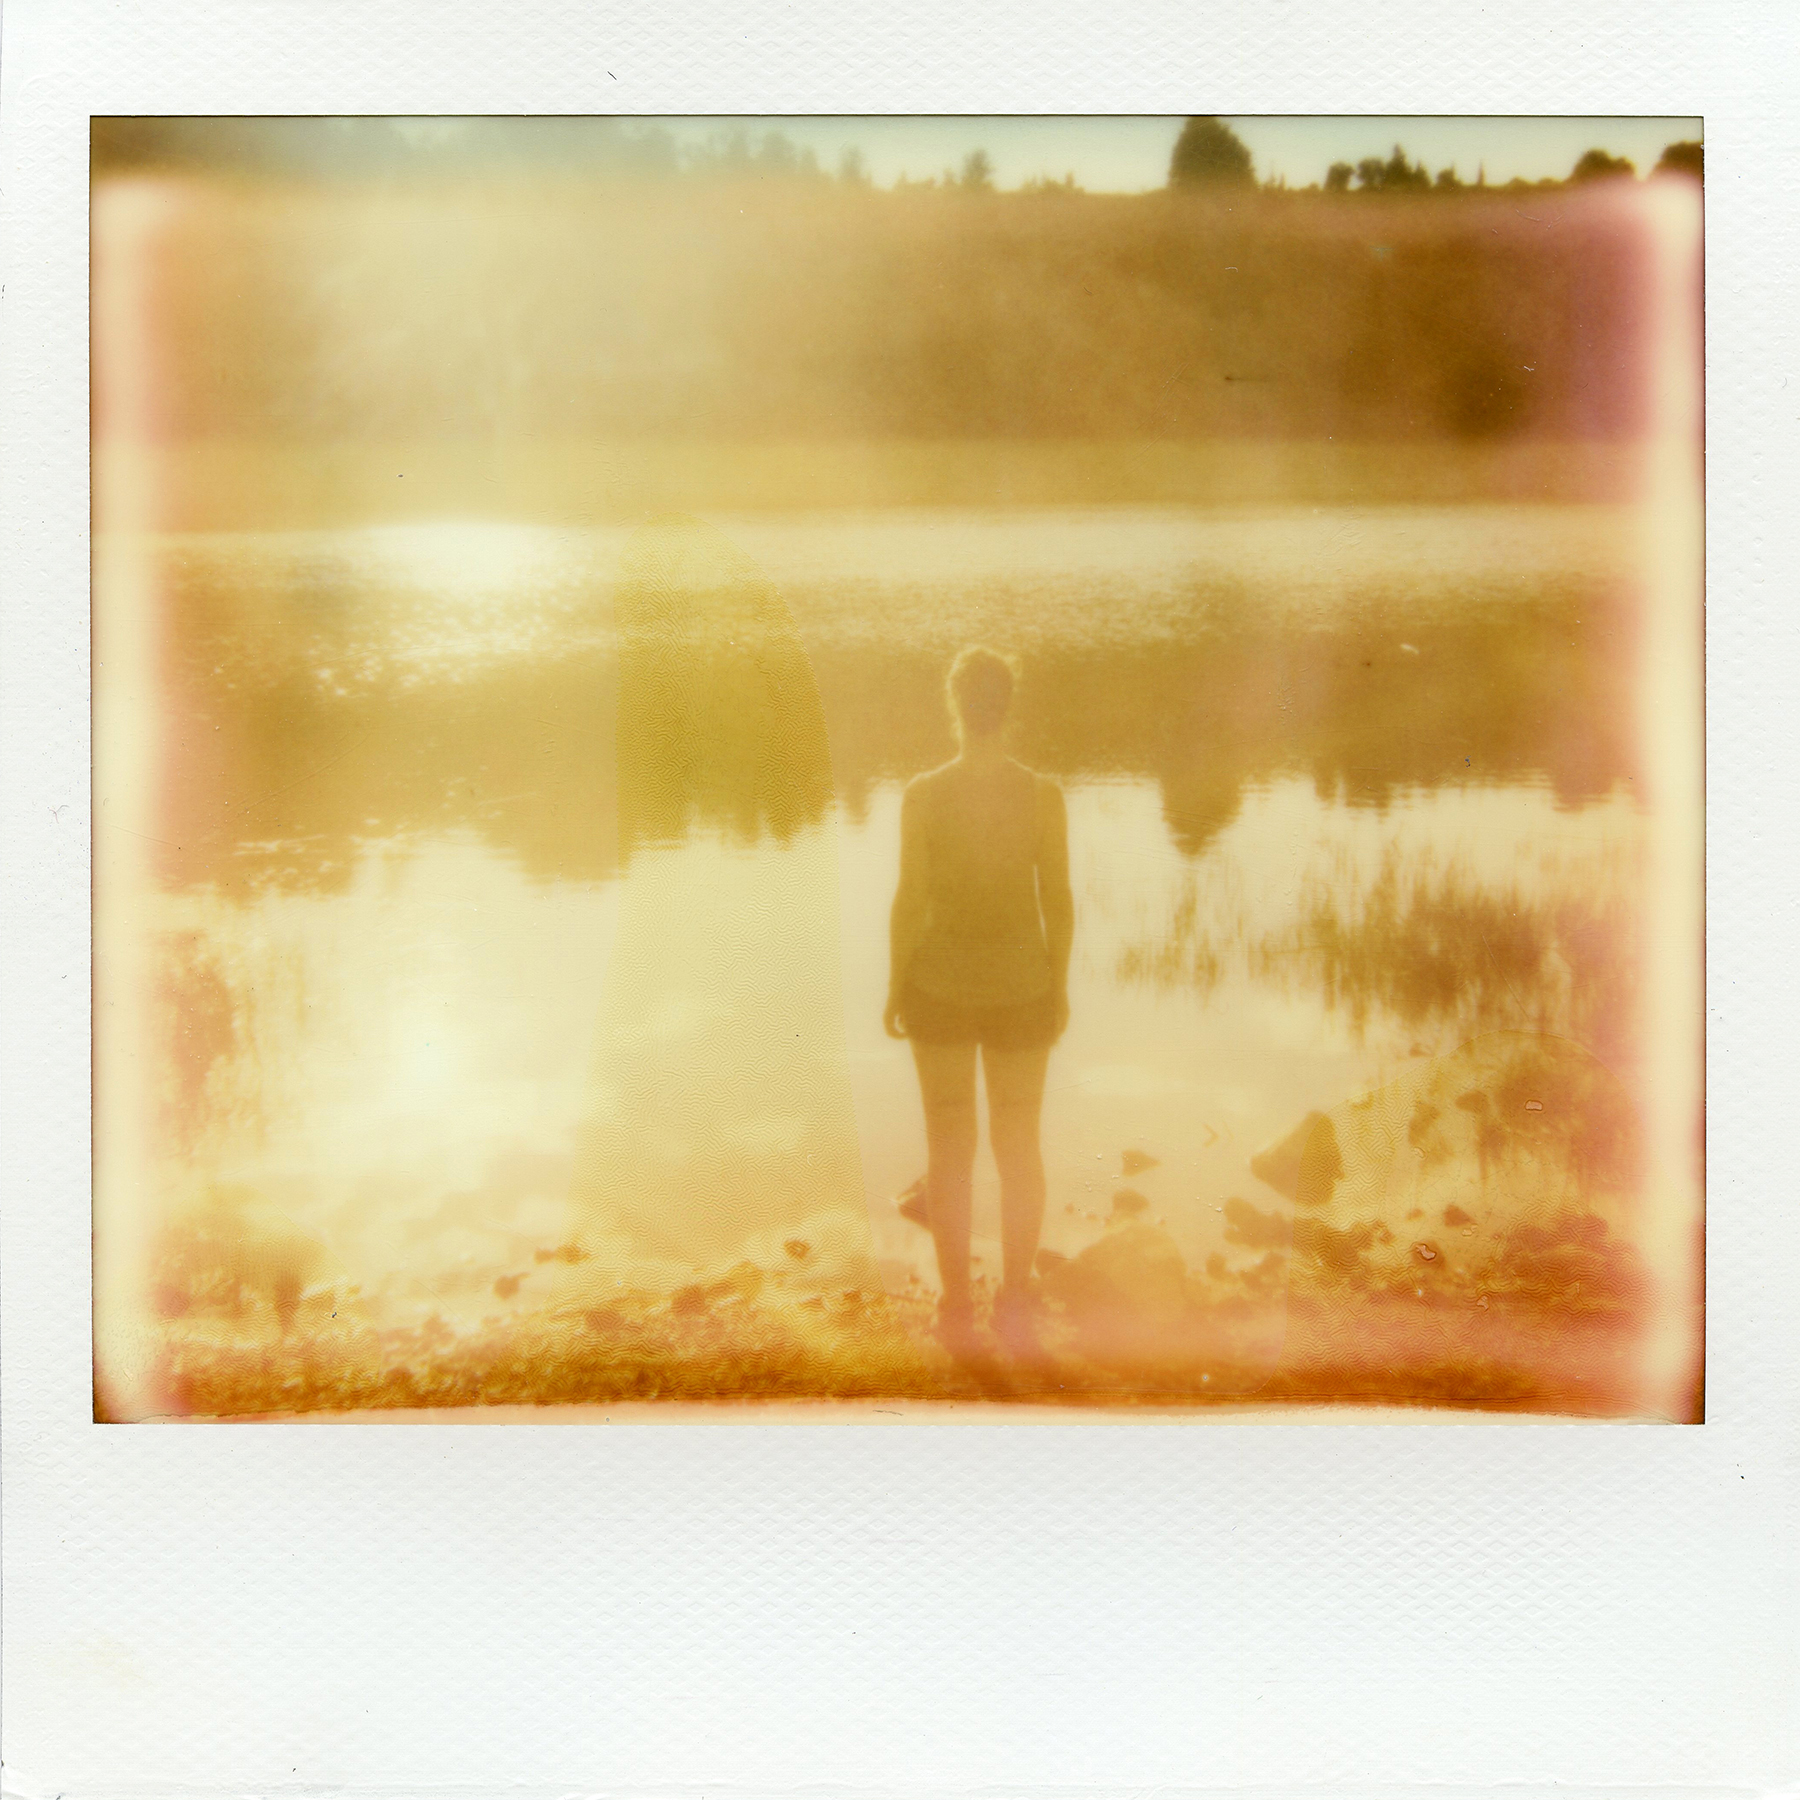 Untitled | Spectra | Impossible Project Spectra Color | La Fille Renne